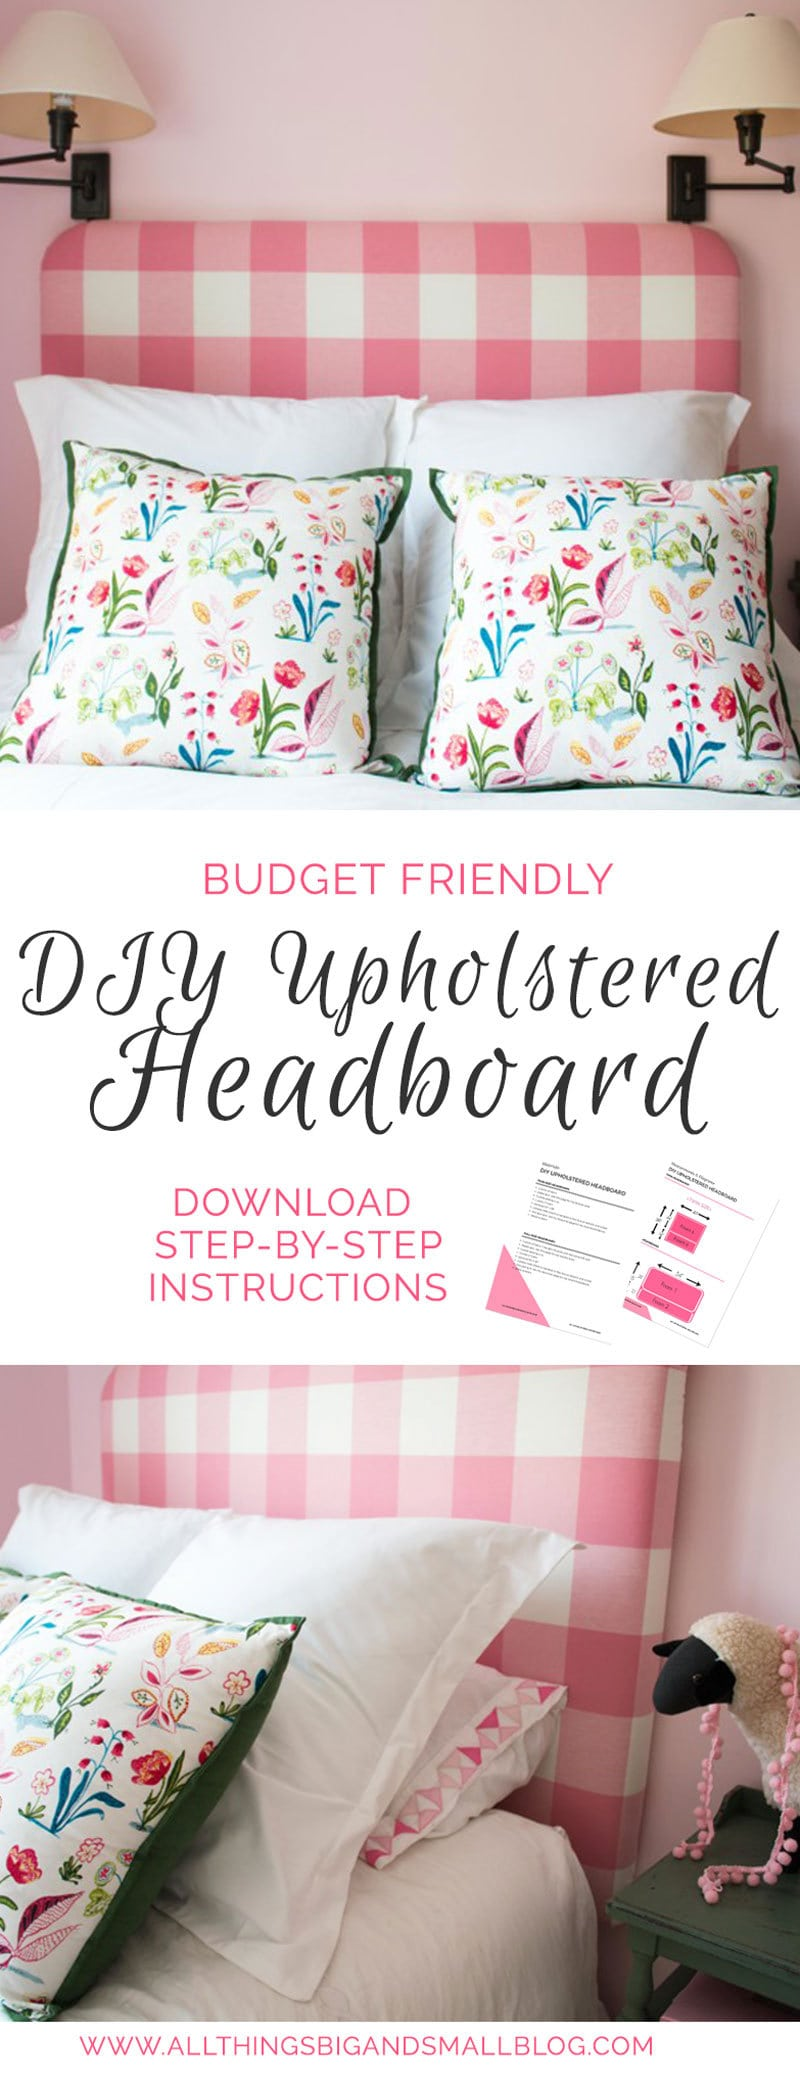 DIY Upholstered Headboard | Step-by-step instructions with printable measurements for your DIY Headboard! ALL THINGS BIG AND SMALL BLOG